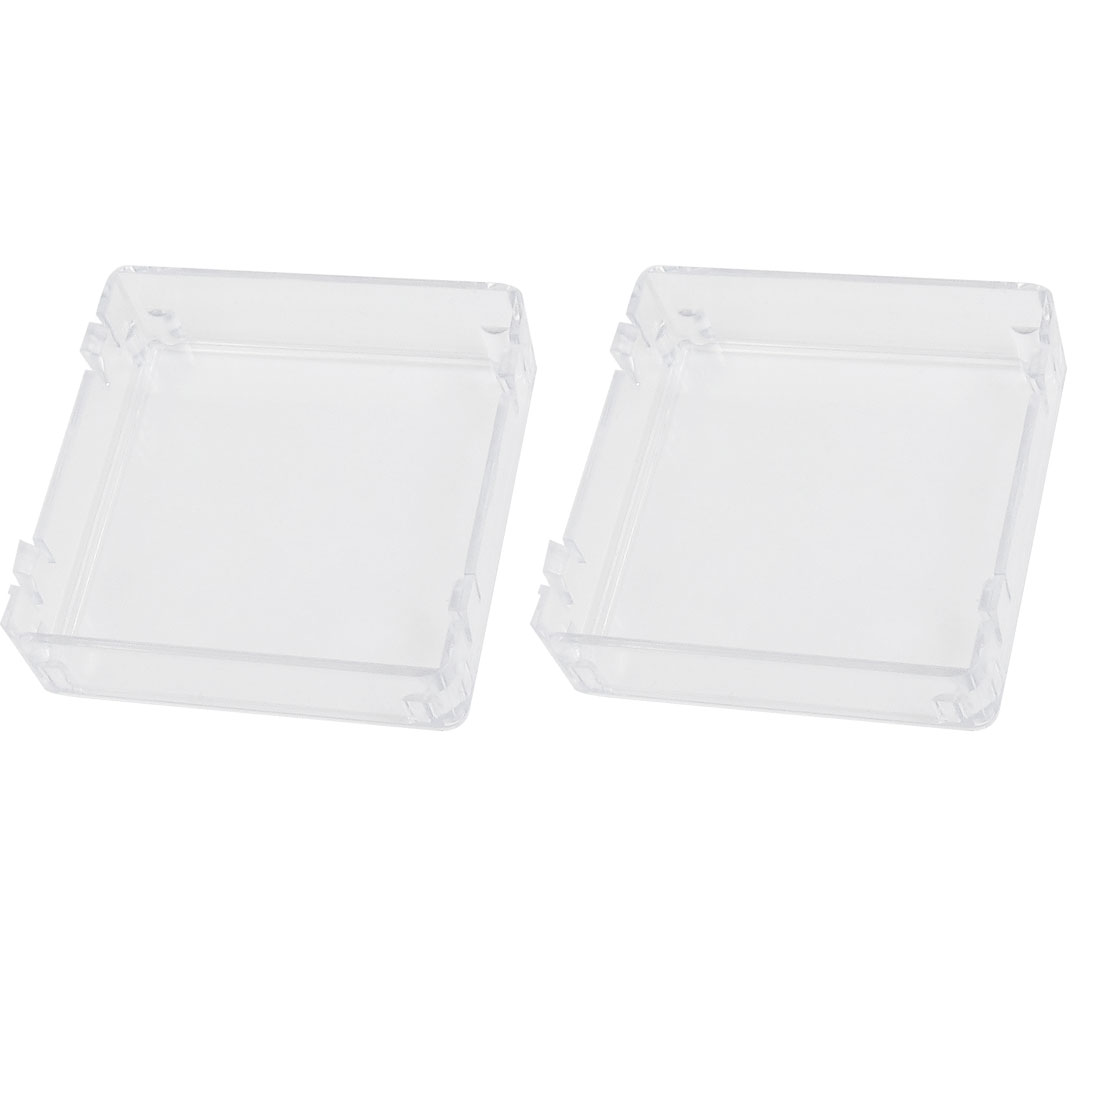 2 Pcs Square Plastic Waterproof Switch Cover Clear 50mmx50mm